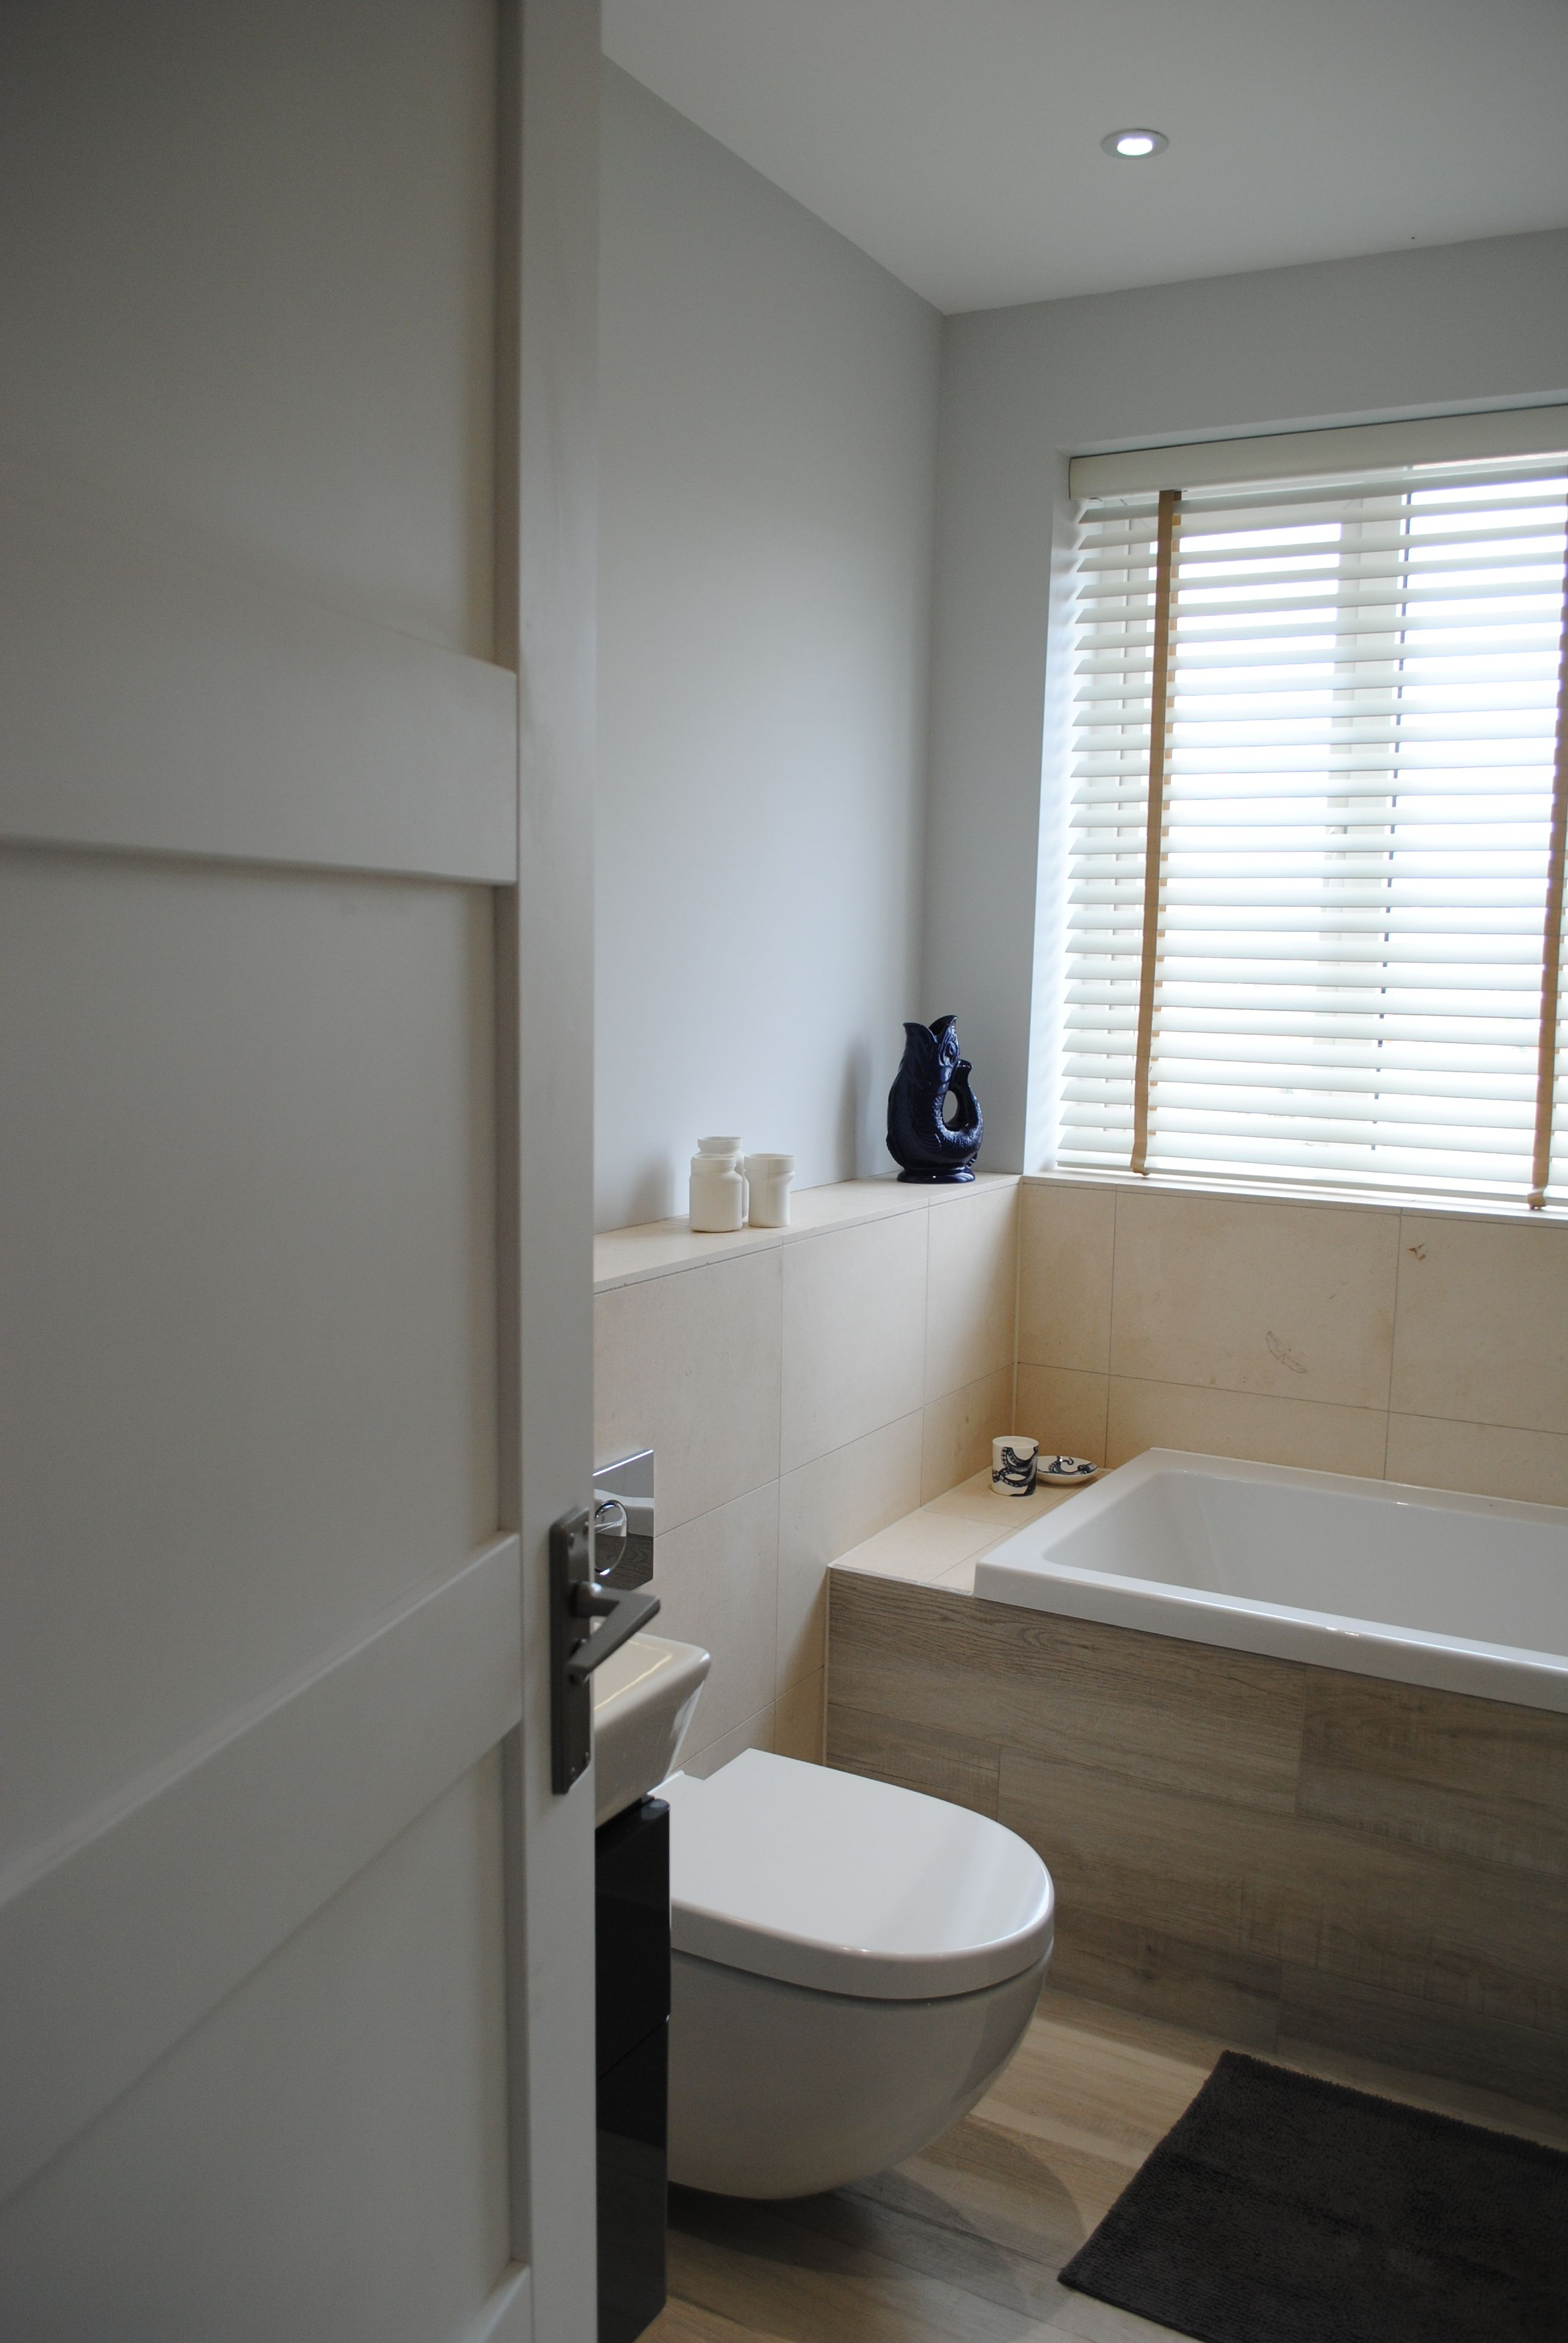 Bathroom created from a spare bedroom